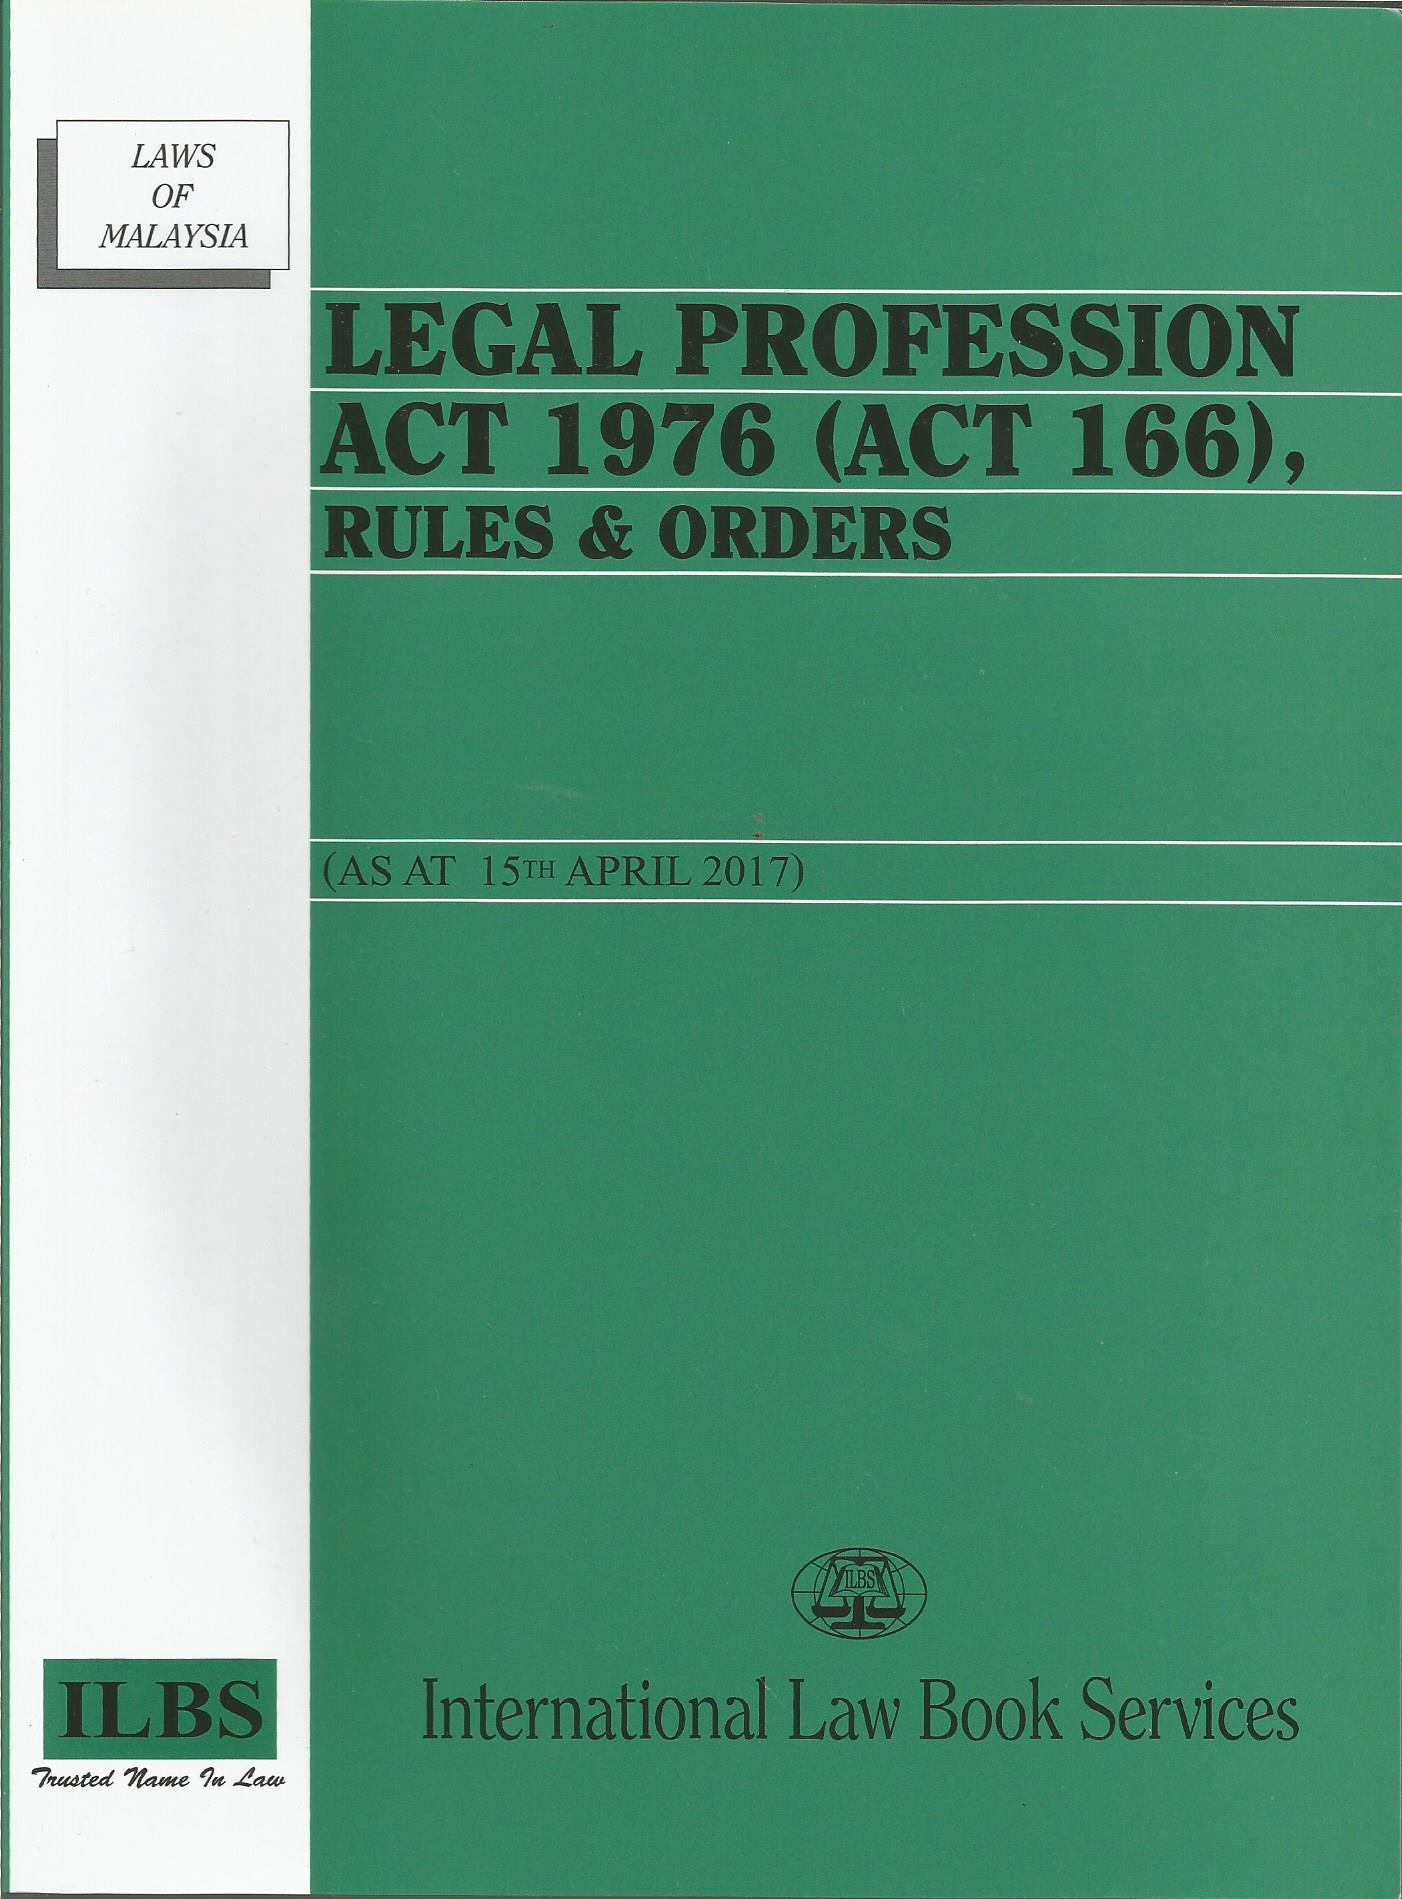 legal prof act rm37.5 0.70001.jpg